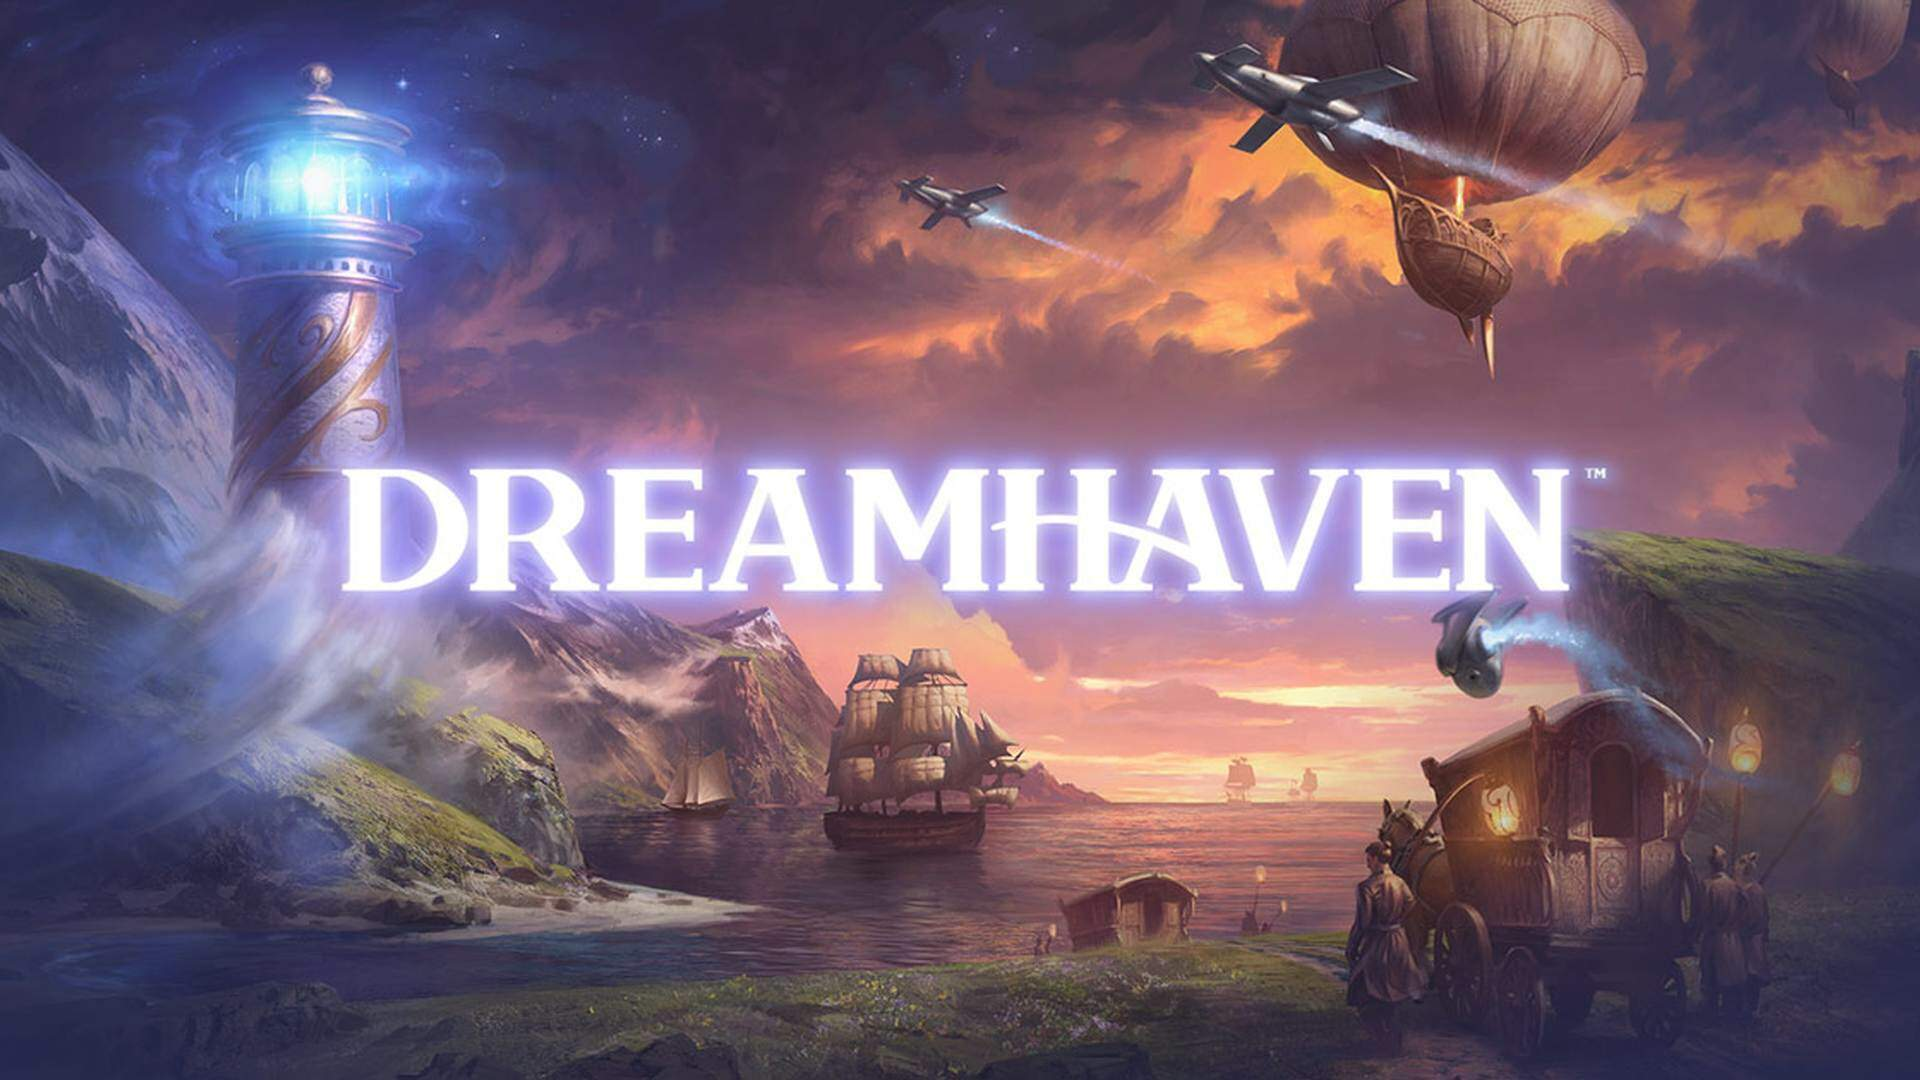 Blizzard Co-Founder Mike Morhaime Forms Dreamhaven, a Company With Two New Studios